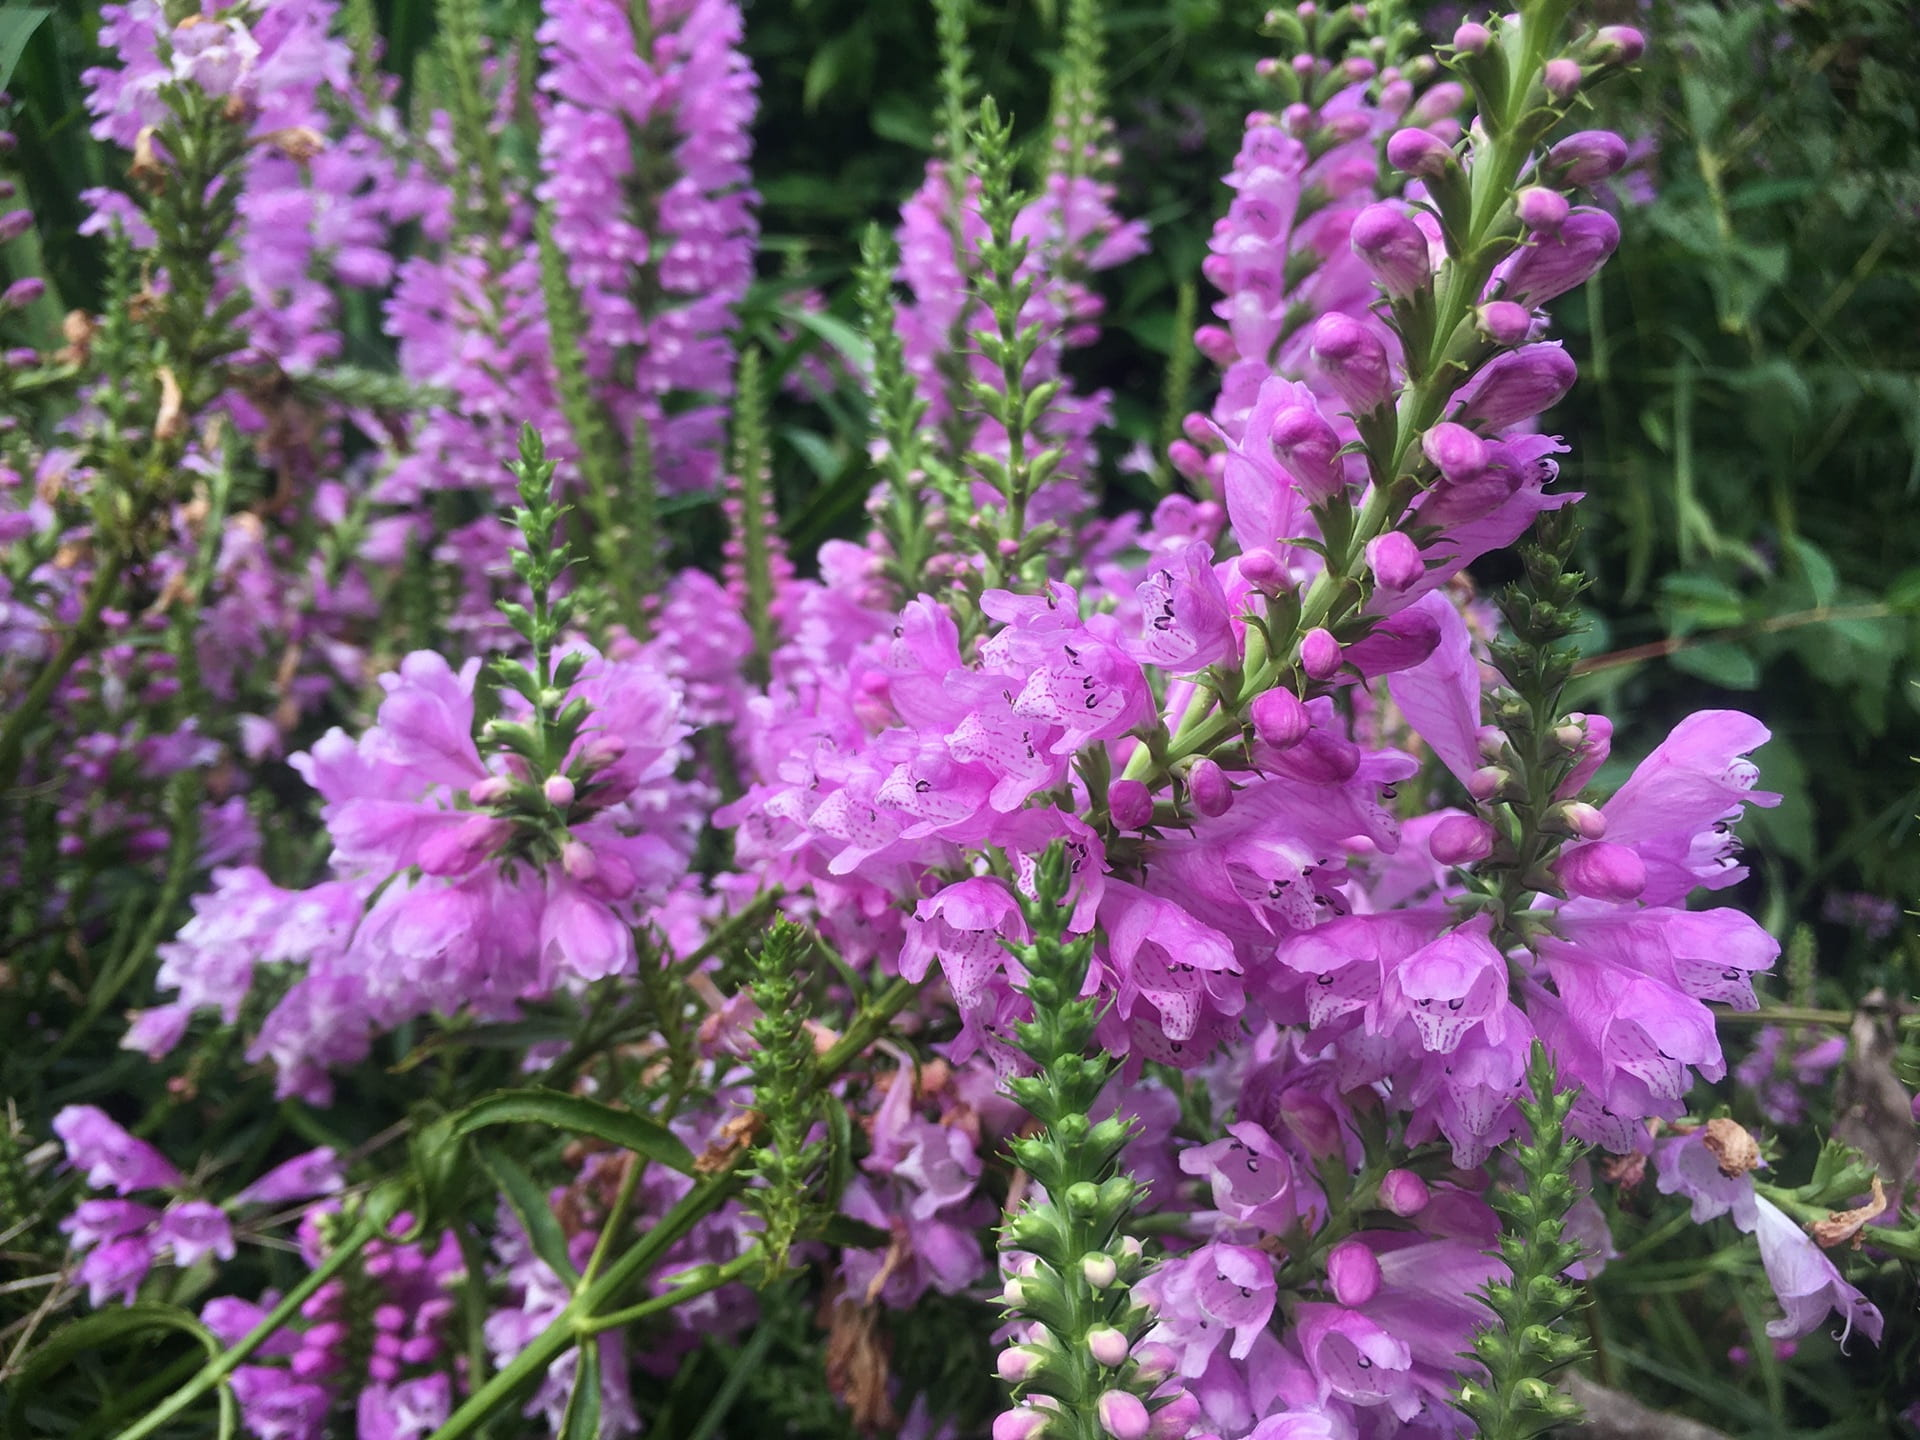 The vivid flowers of Physostegia virginiana thrives in the moist soils of our rain garden.